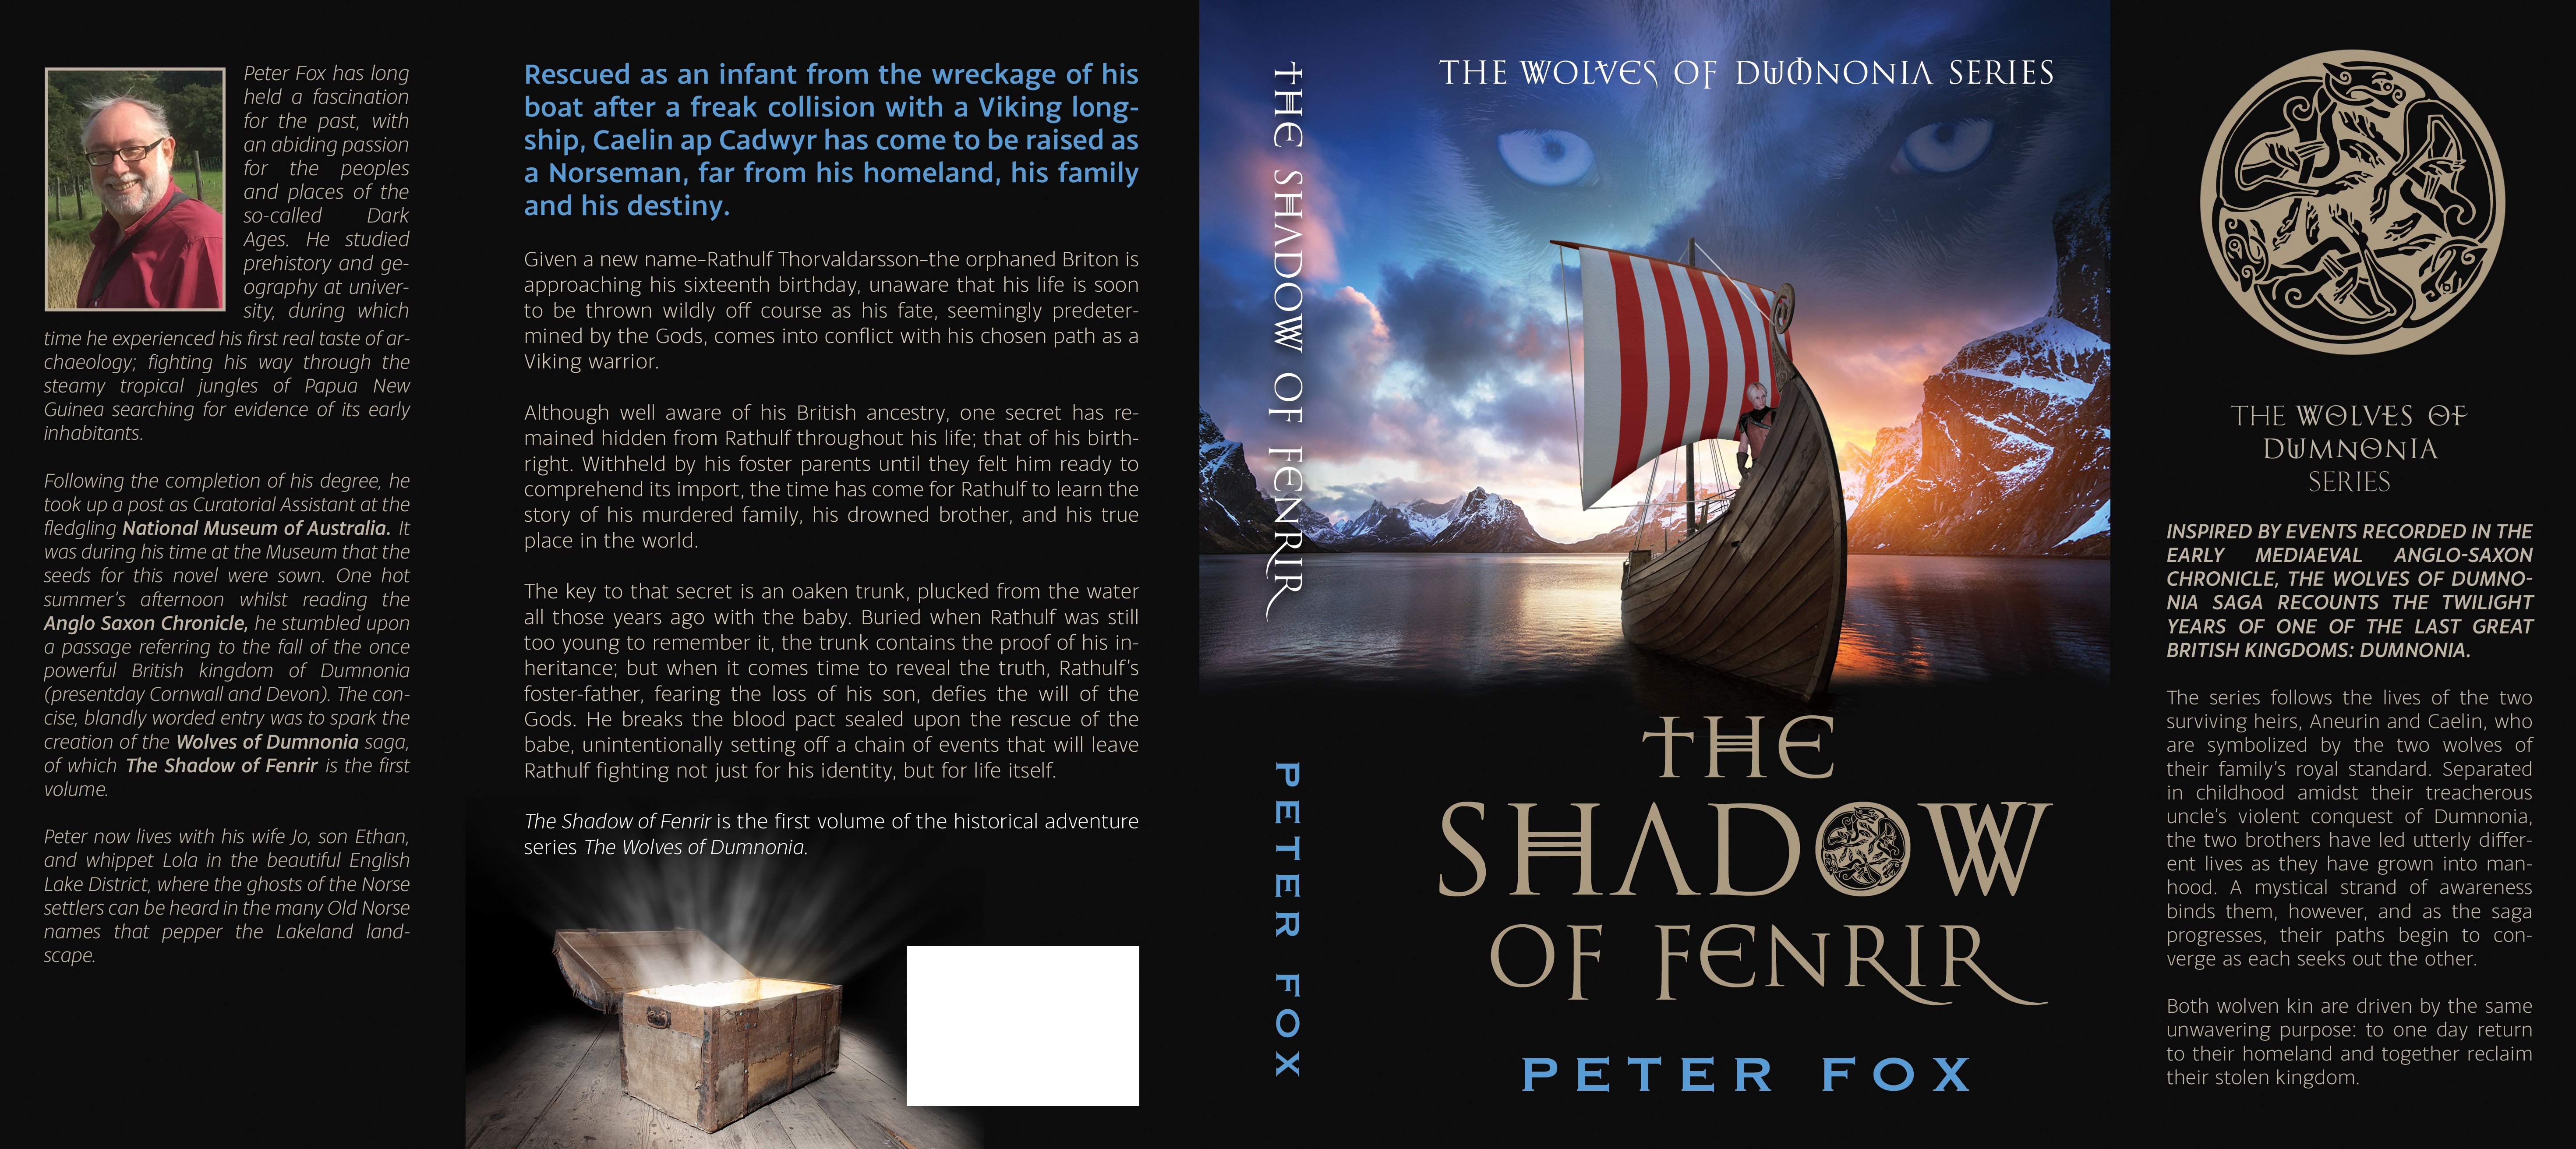 Create a dramatic cover for a Viking-age historical adventure series